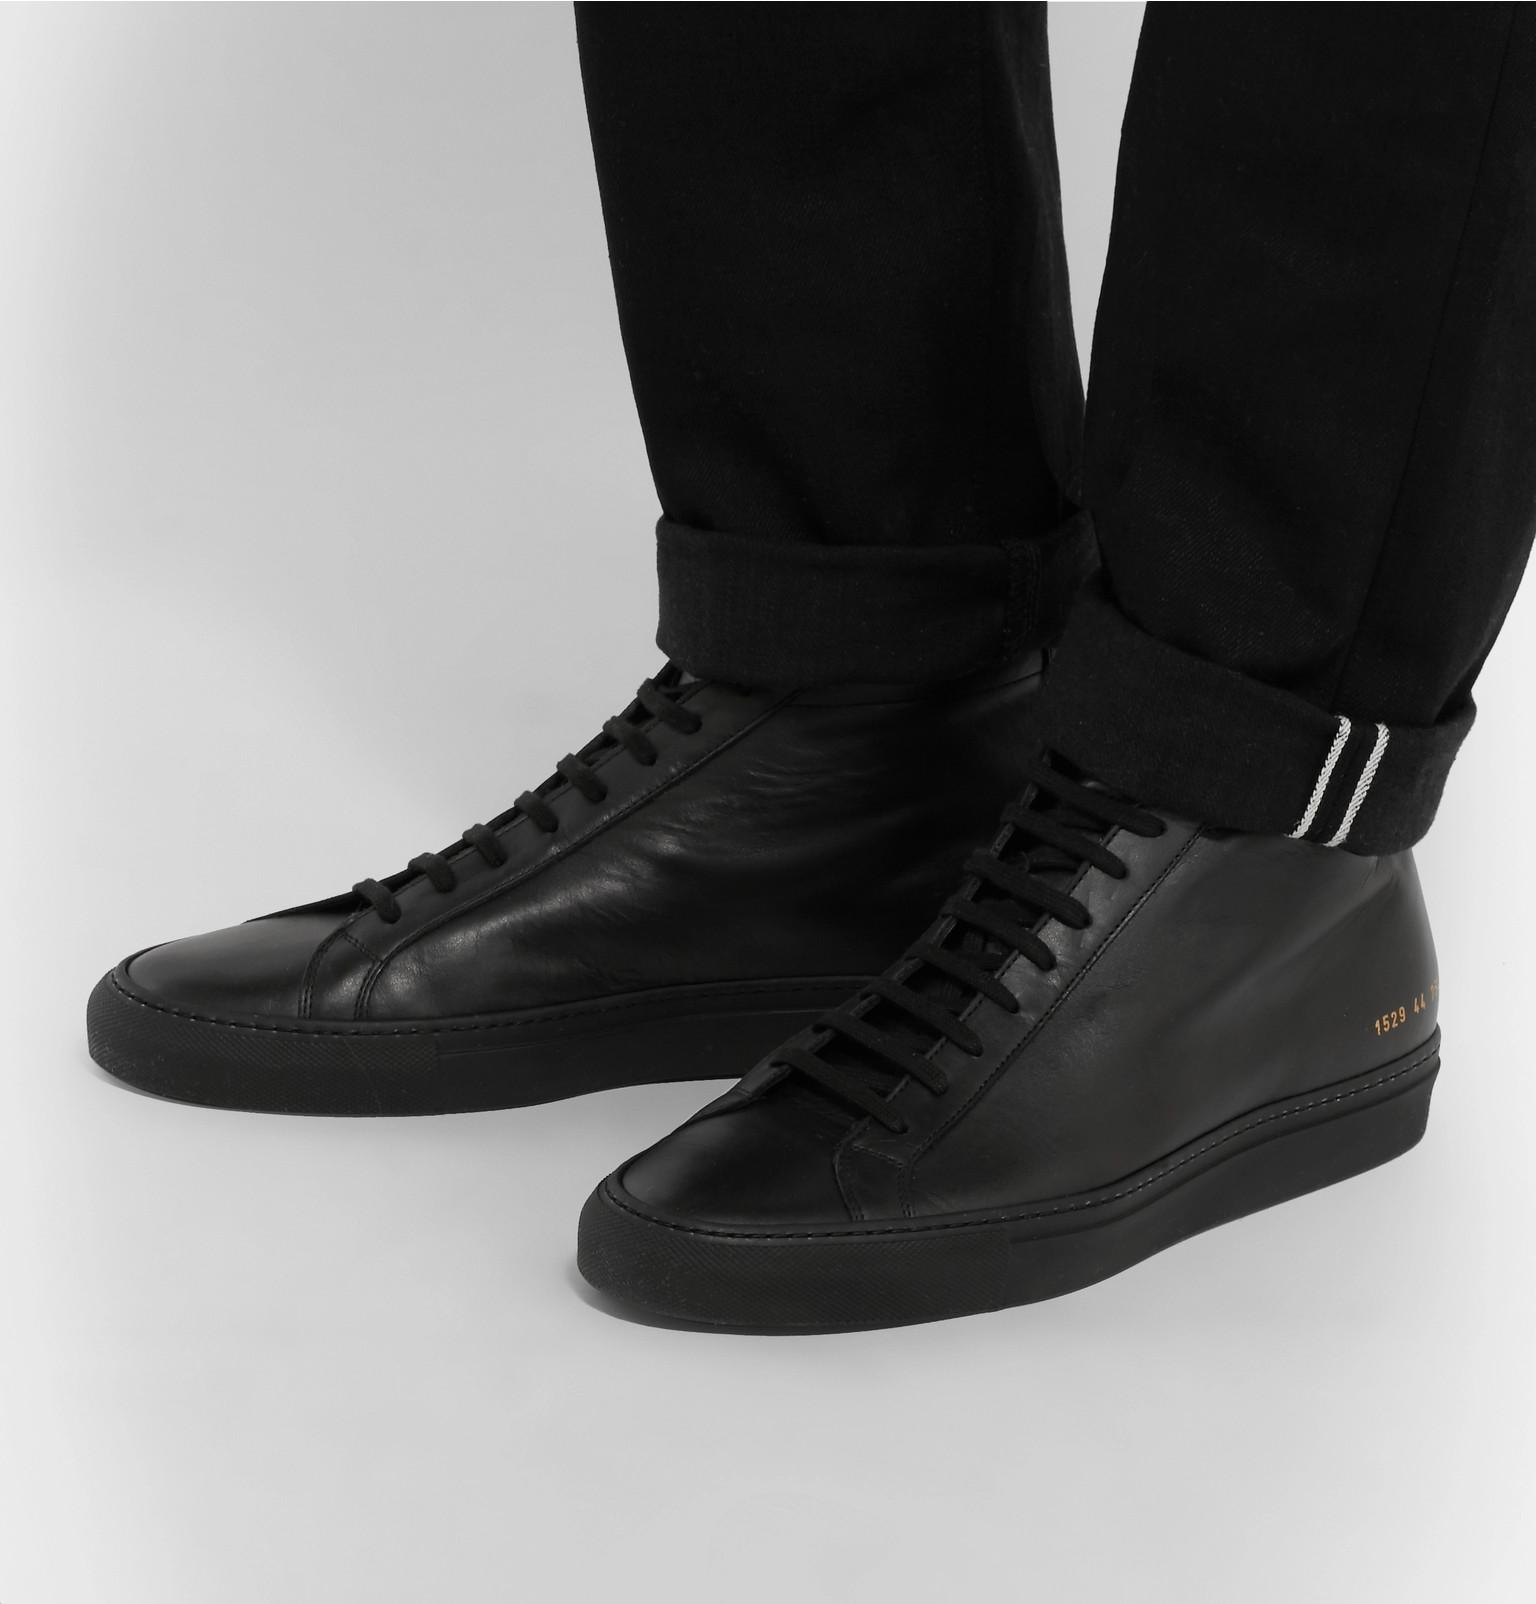 b74f398c7a3 Common Projects - Black Original Achilles Leather High-top Sneakers for Men  - Lyst. View fullscreen